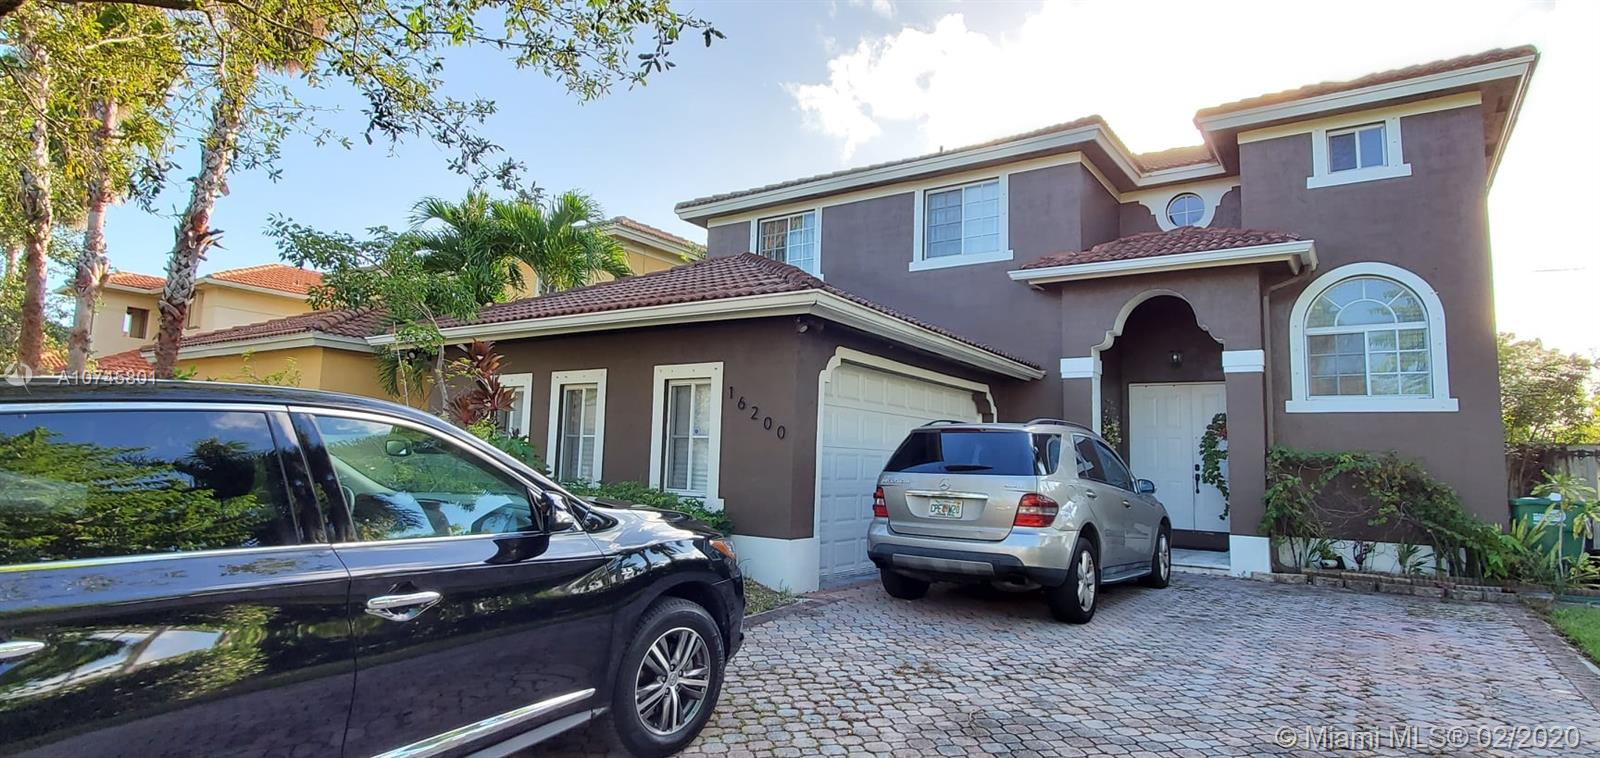 16200 SW 91 Ct  For Sale A10745801, FL